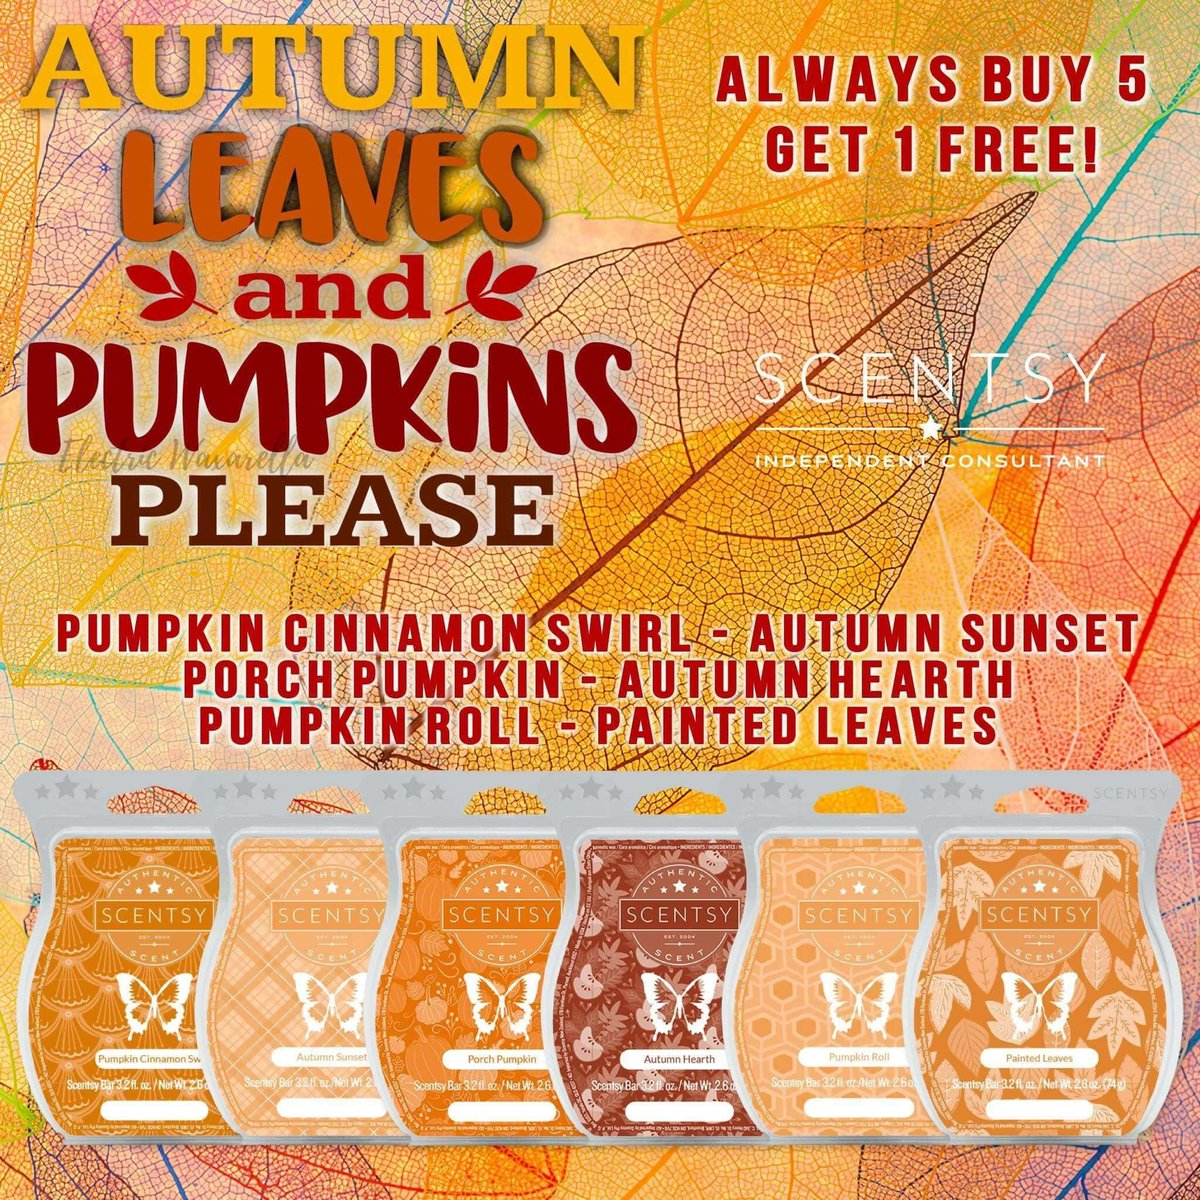 Cody Kornegay On Twitter This Autumn Leaves And Pumpkins Please Bundle Is Fall Scent Heaven All 6 Wax Bars For Only 30 Order Online Link In My Bio Scentsy Waxbundle